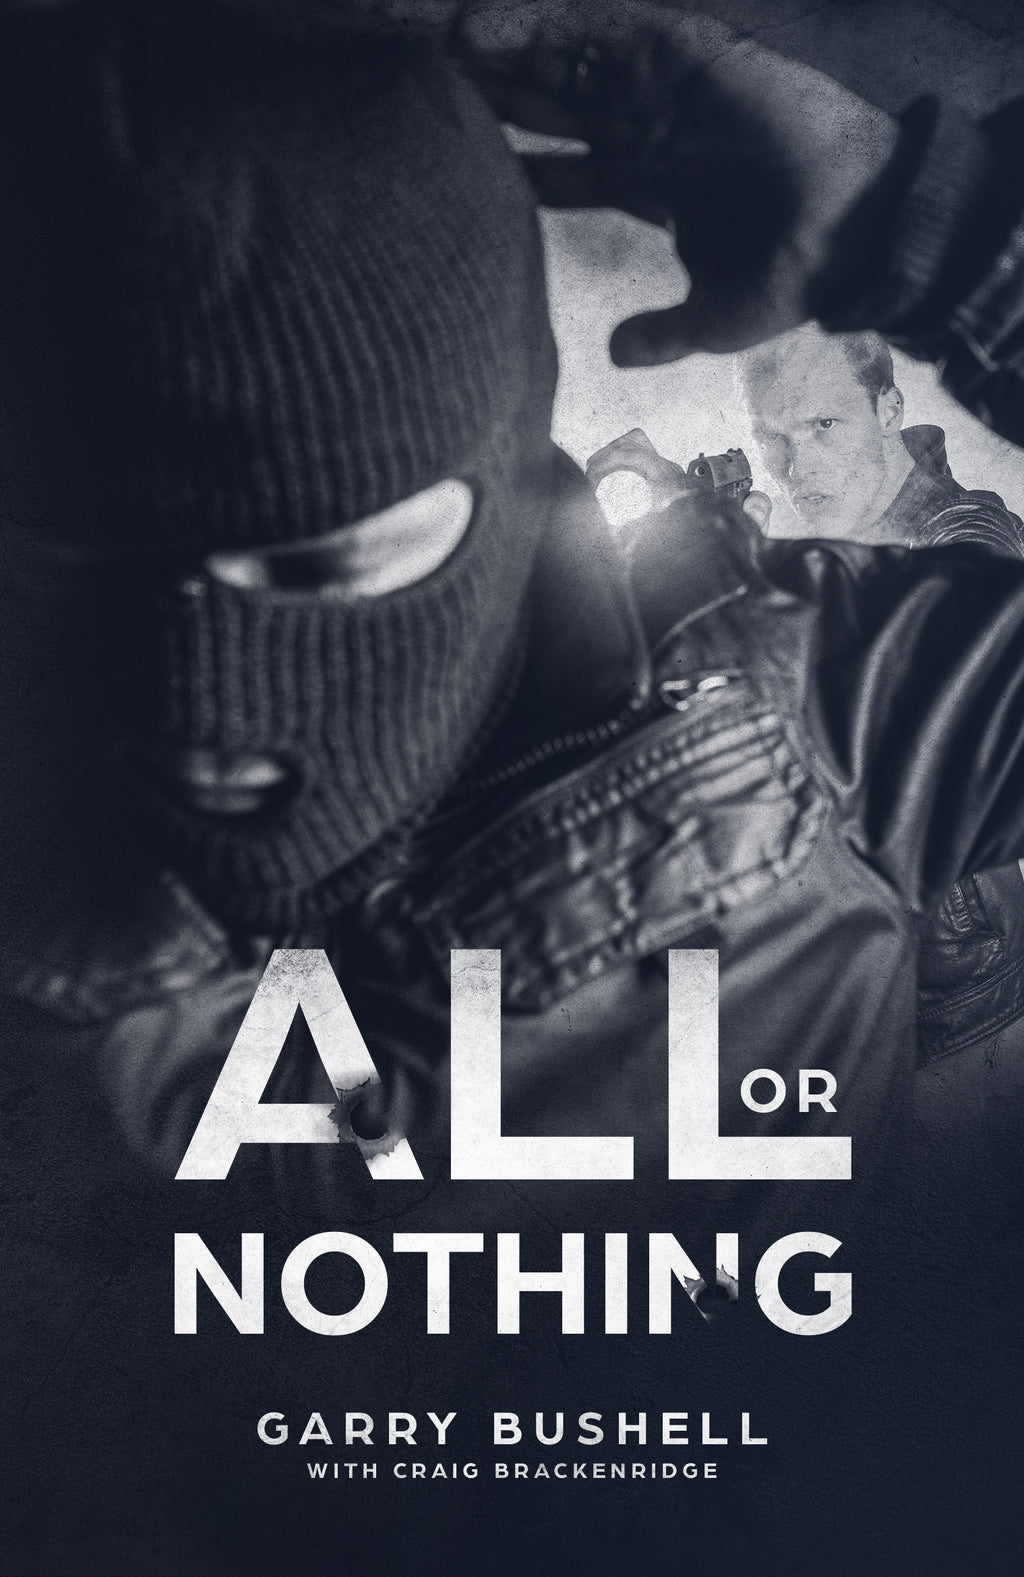 All or Nothing - Garry Bushell - Caffeine Nights Books